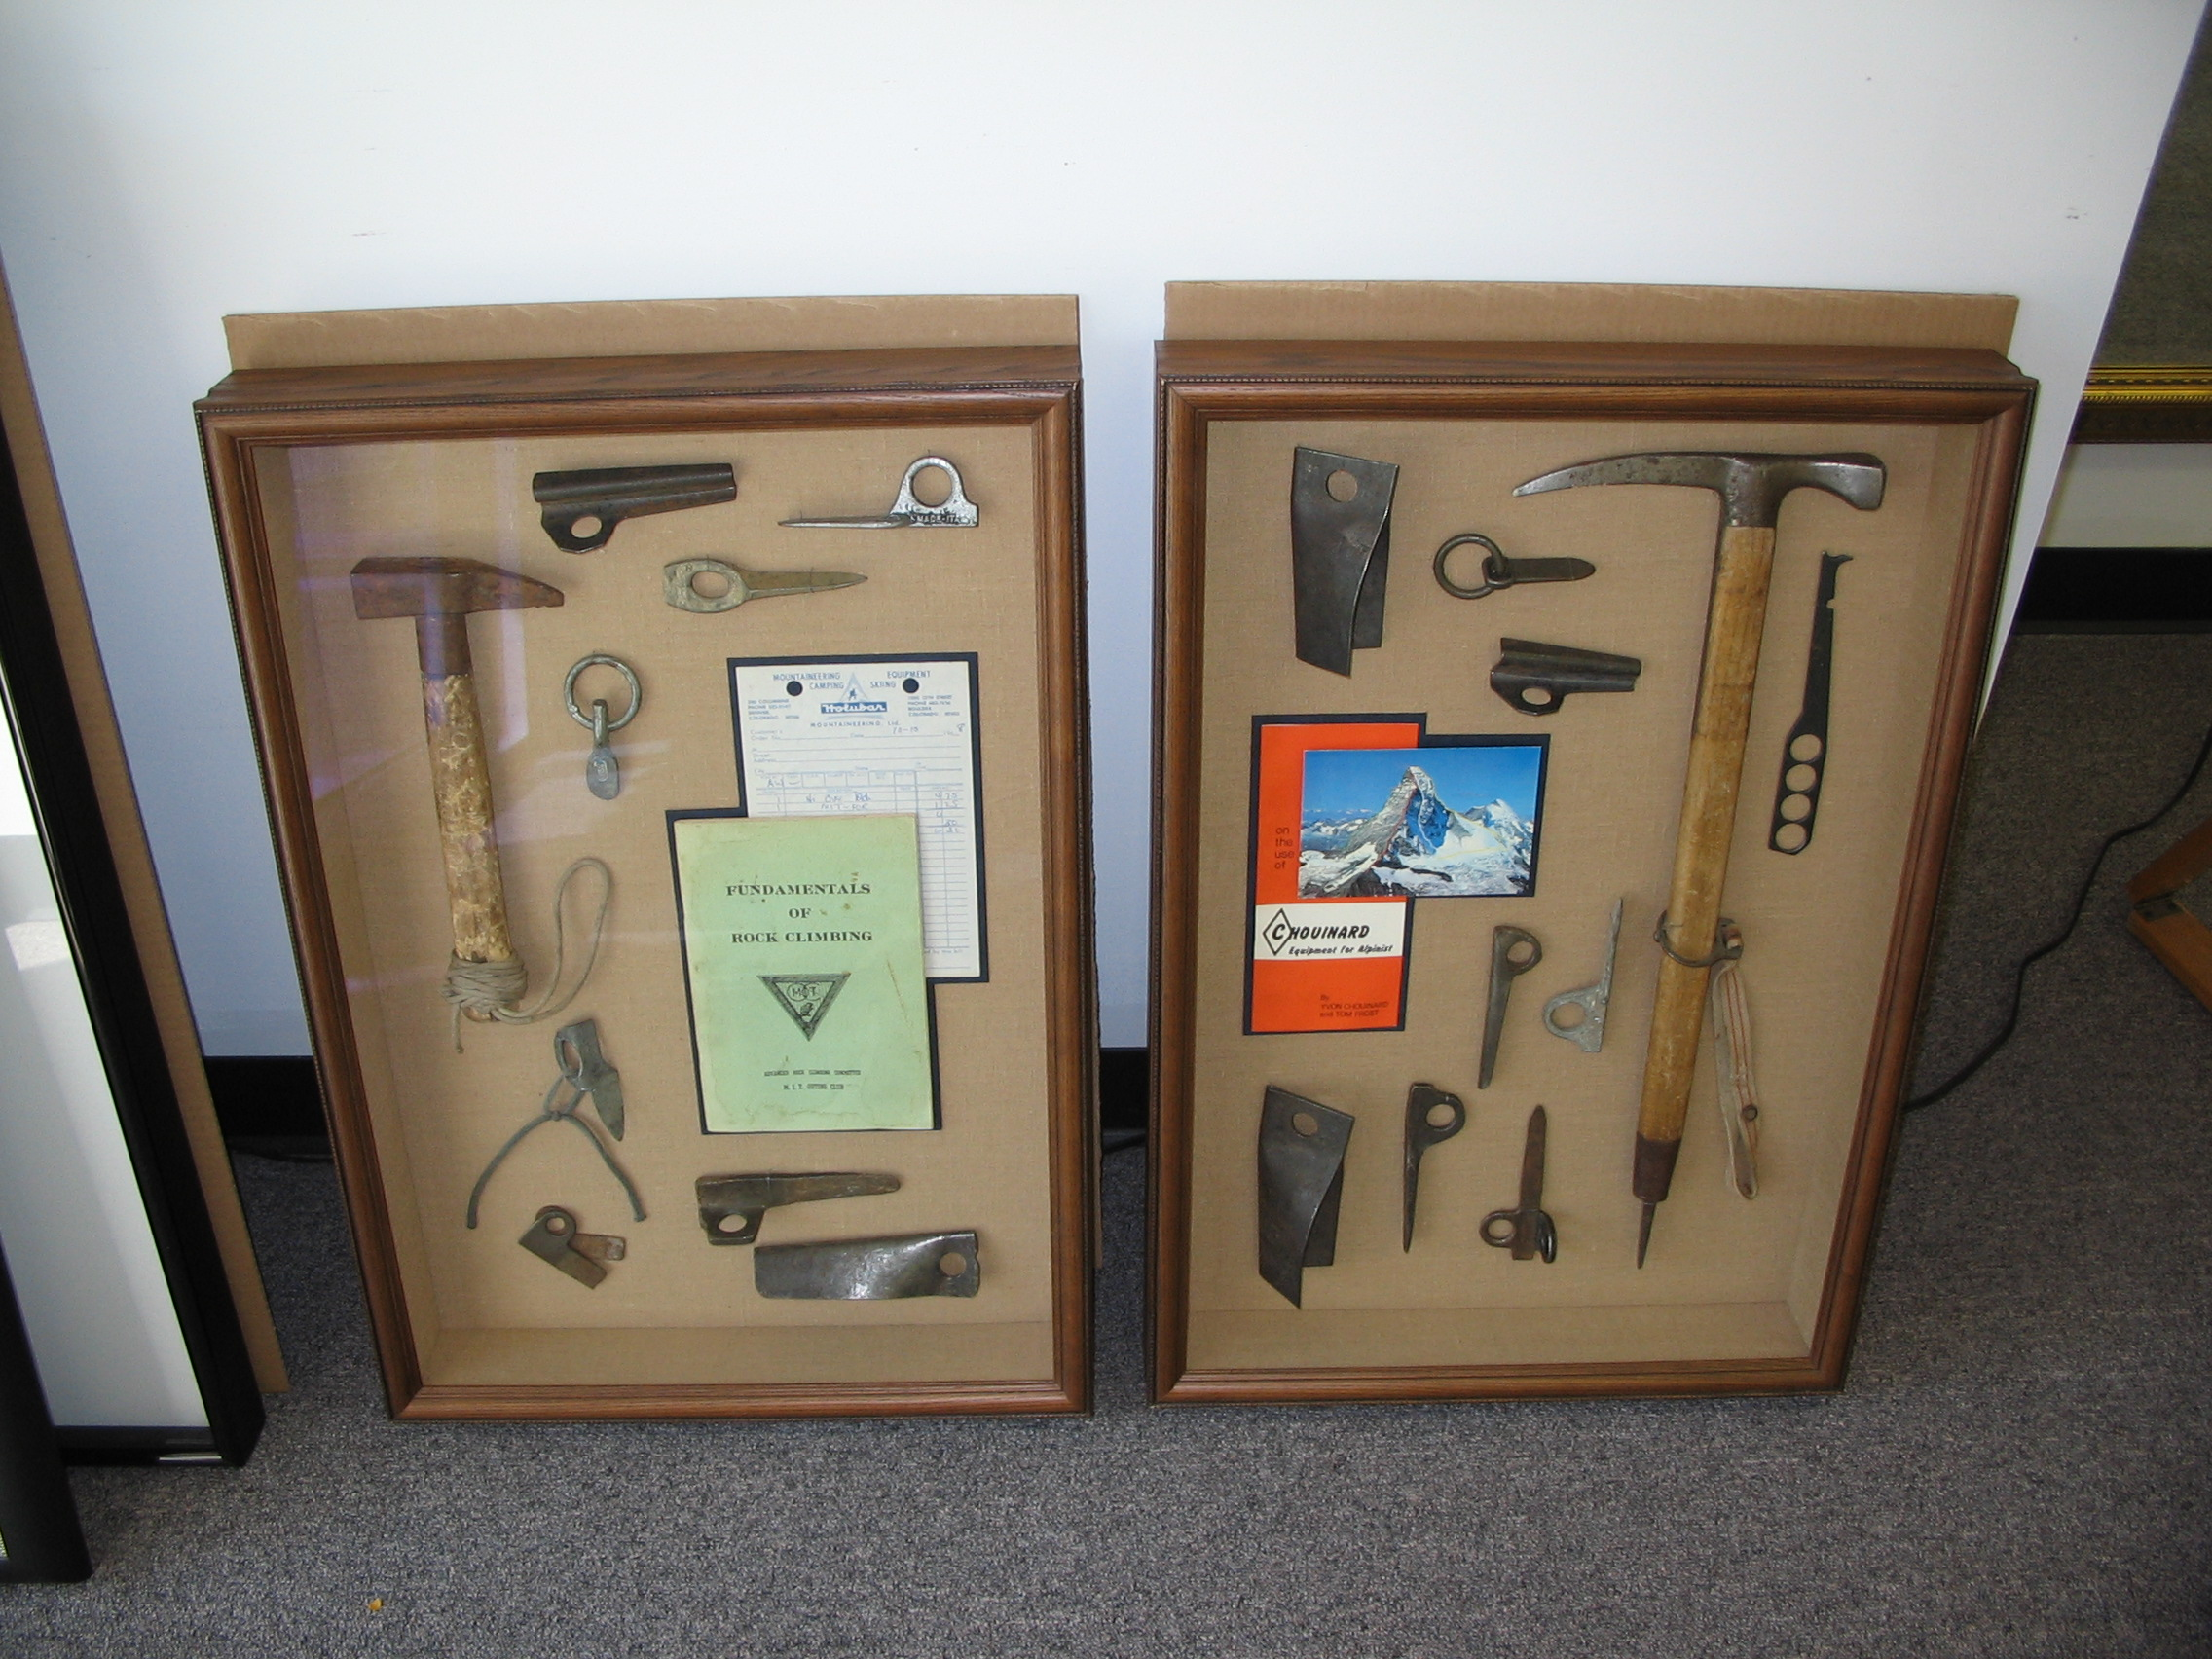 Hiking material framed by The Framemakers